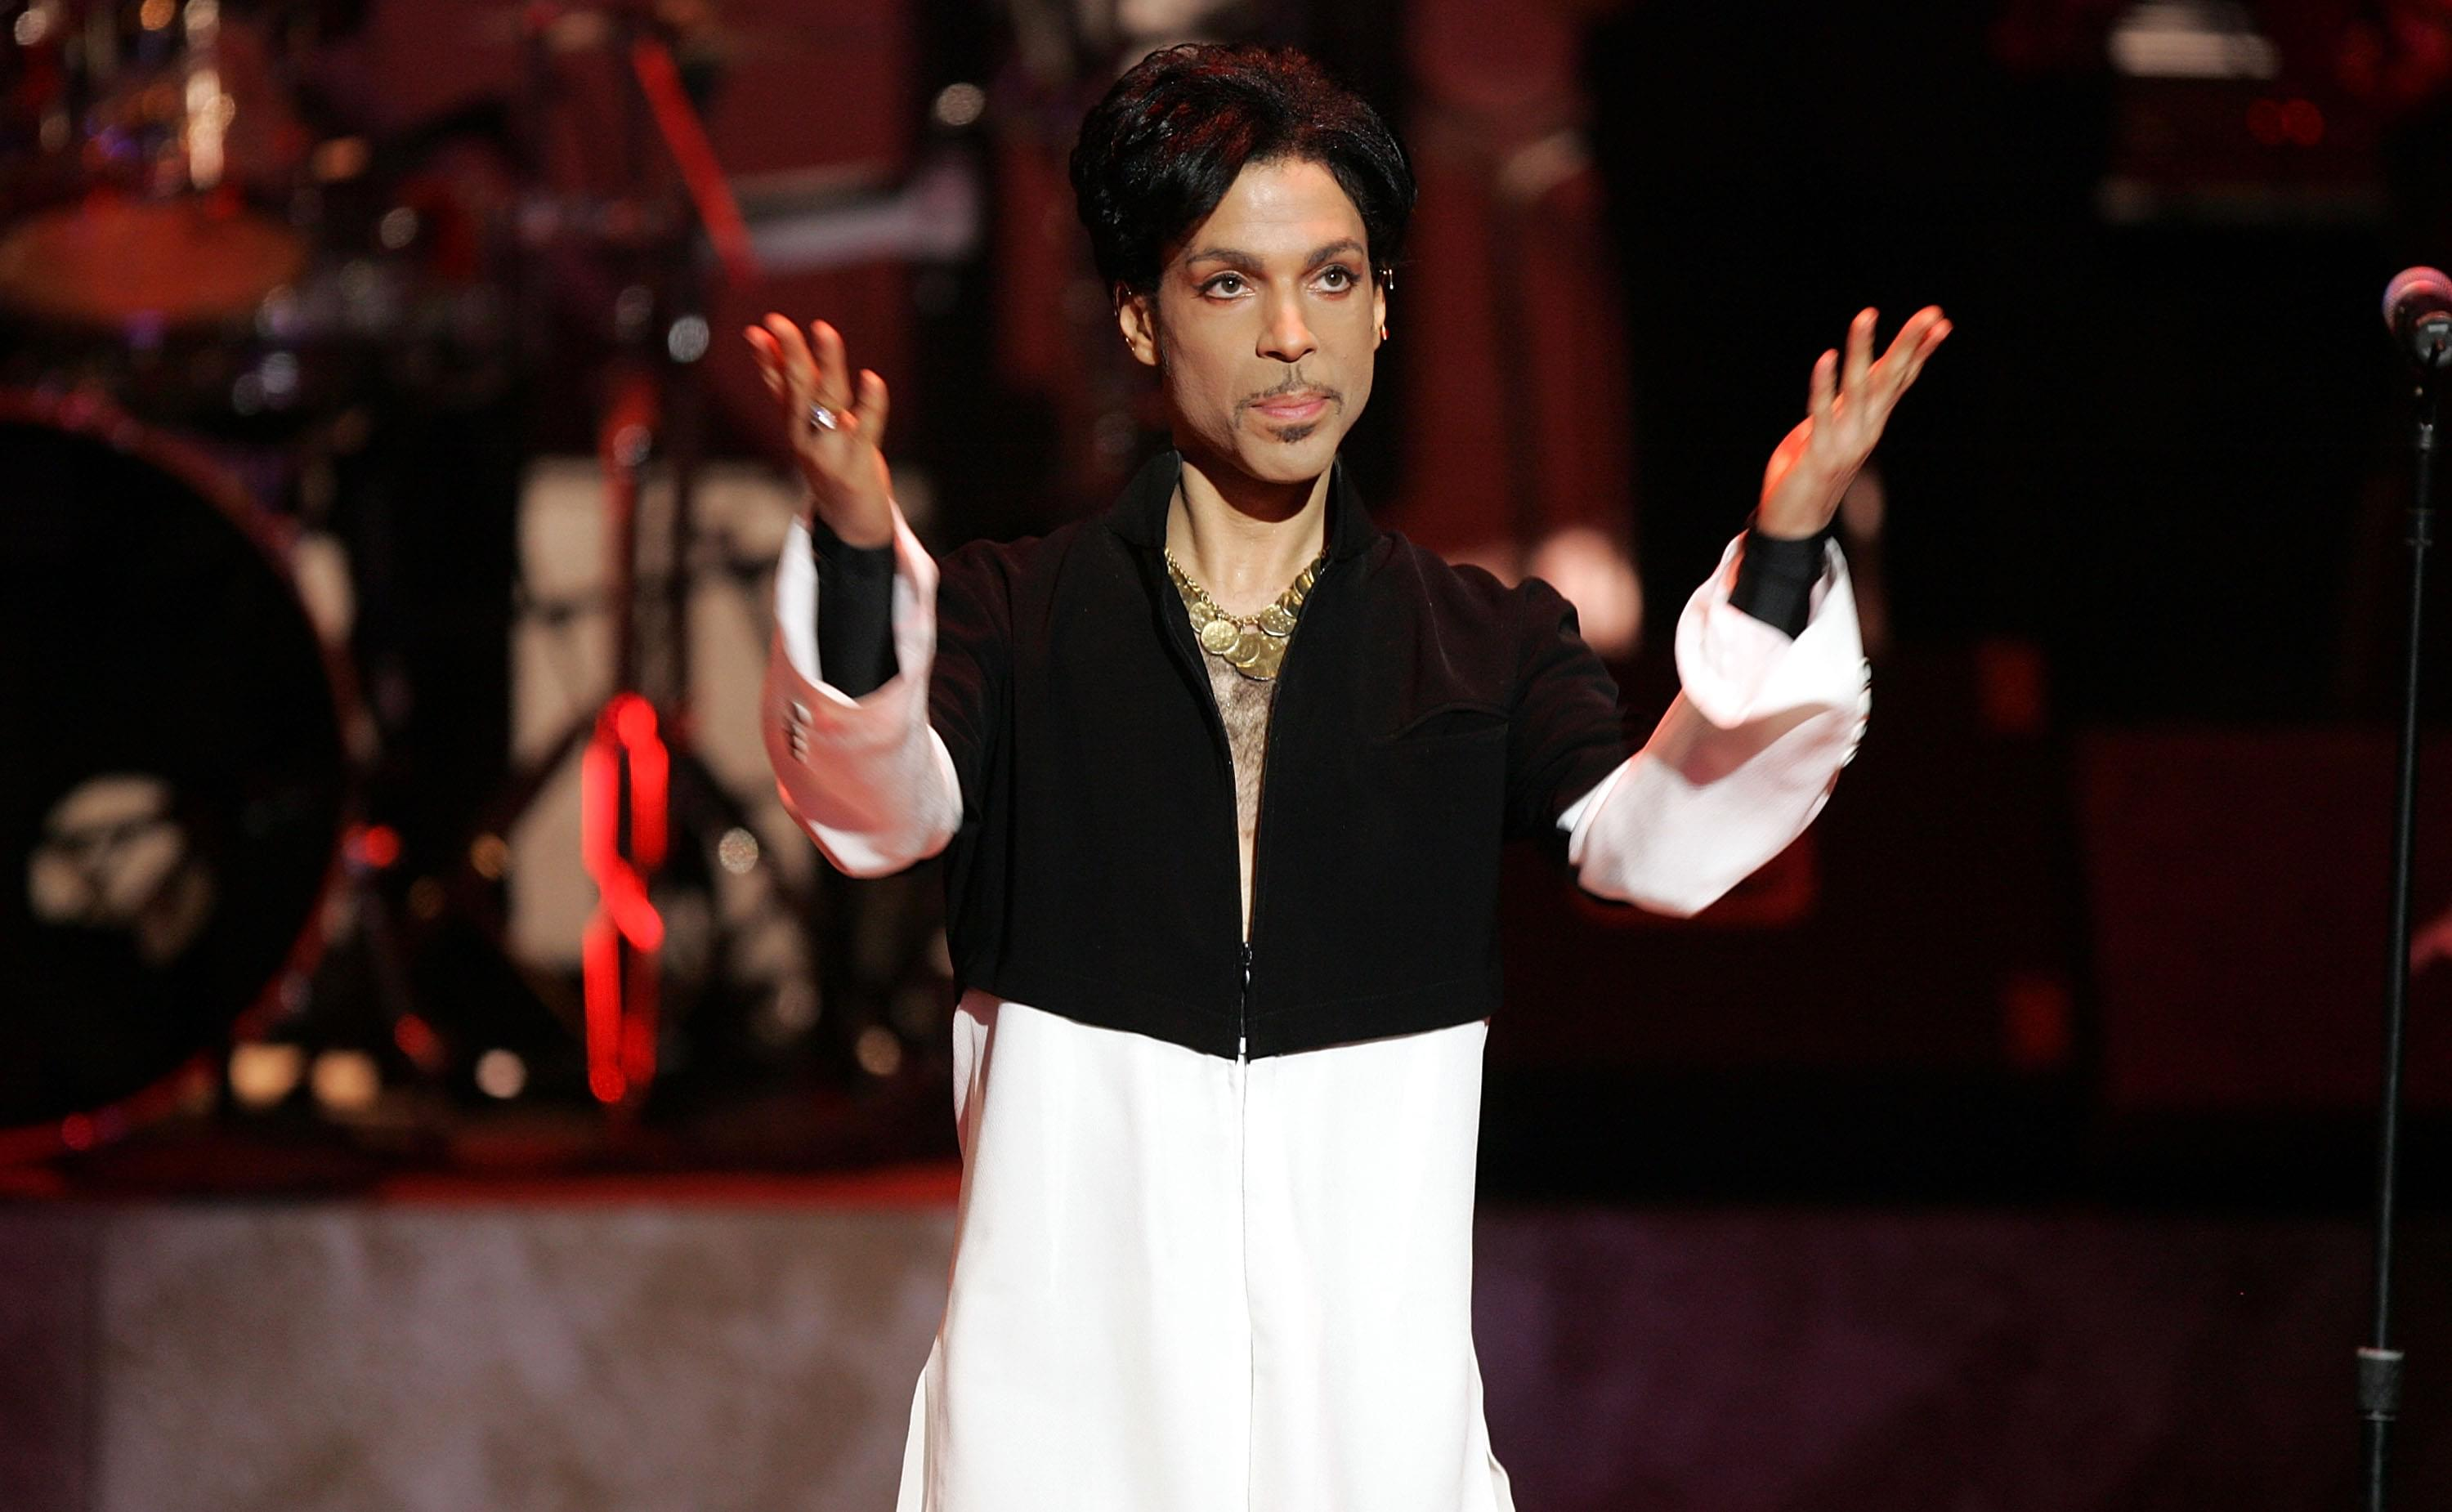 Prince's 23 albums from 1995-2010 Are Now Available To Stream Online